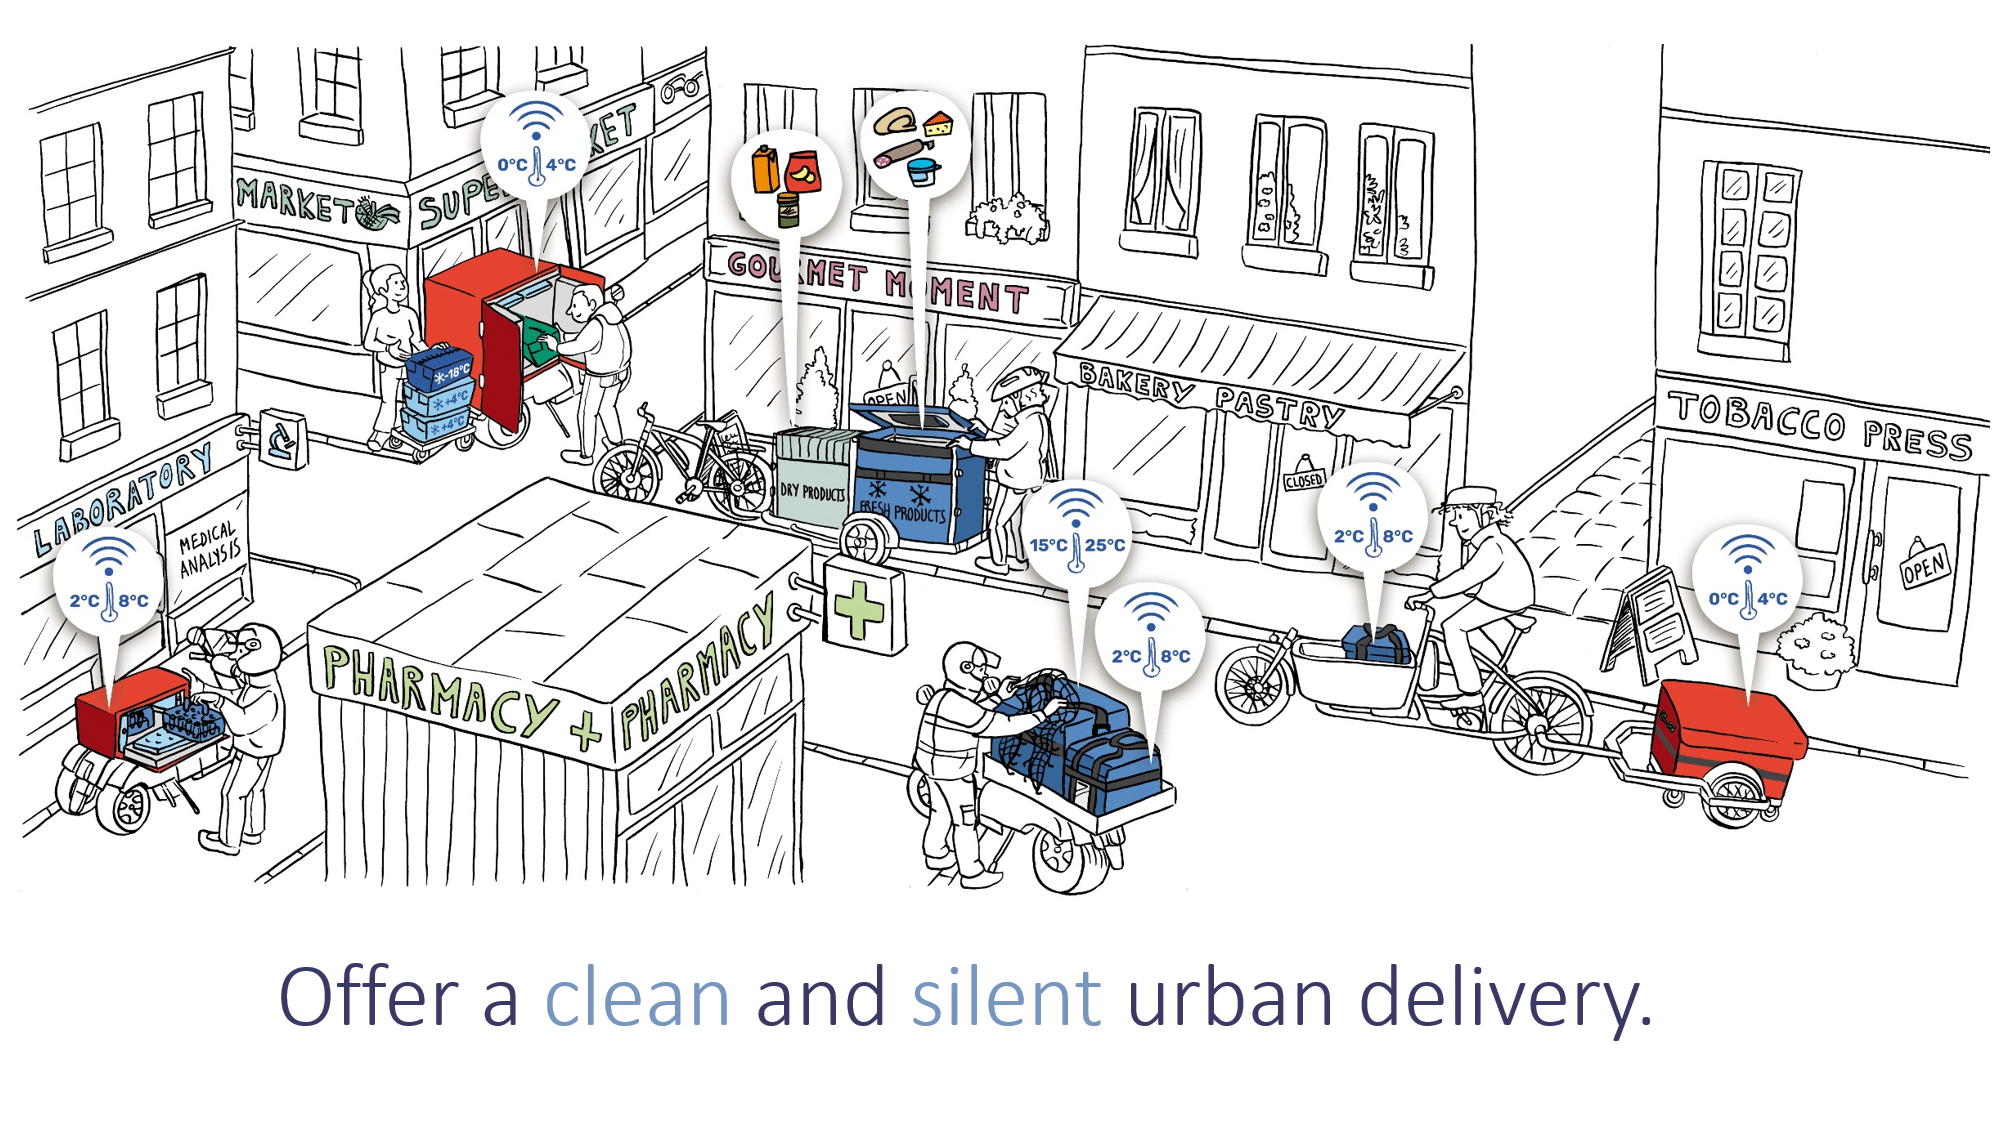 Offer a clean and silent urban delivery with insulated container CarryTemp.